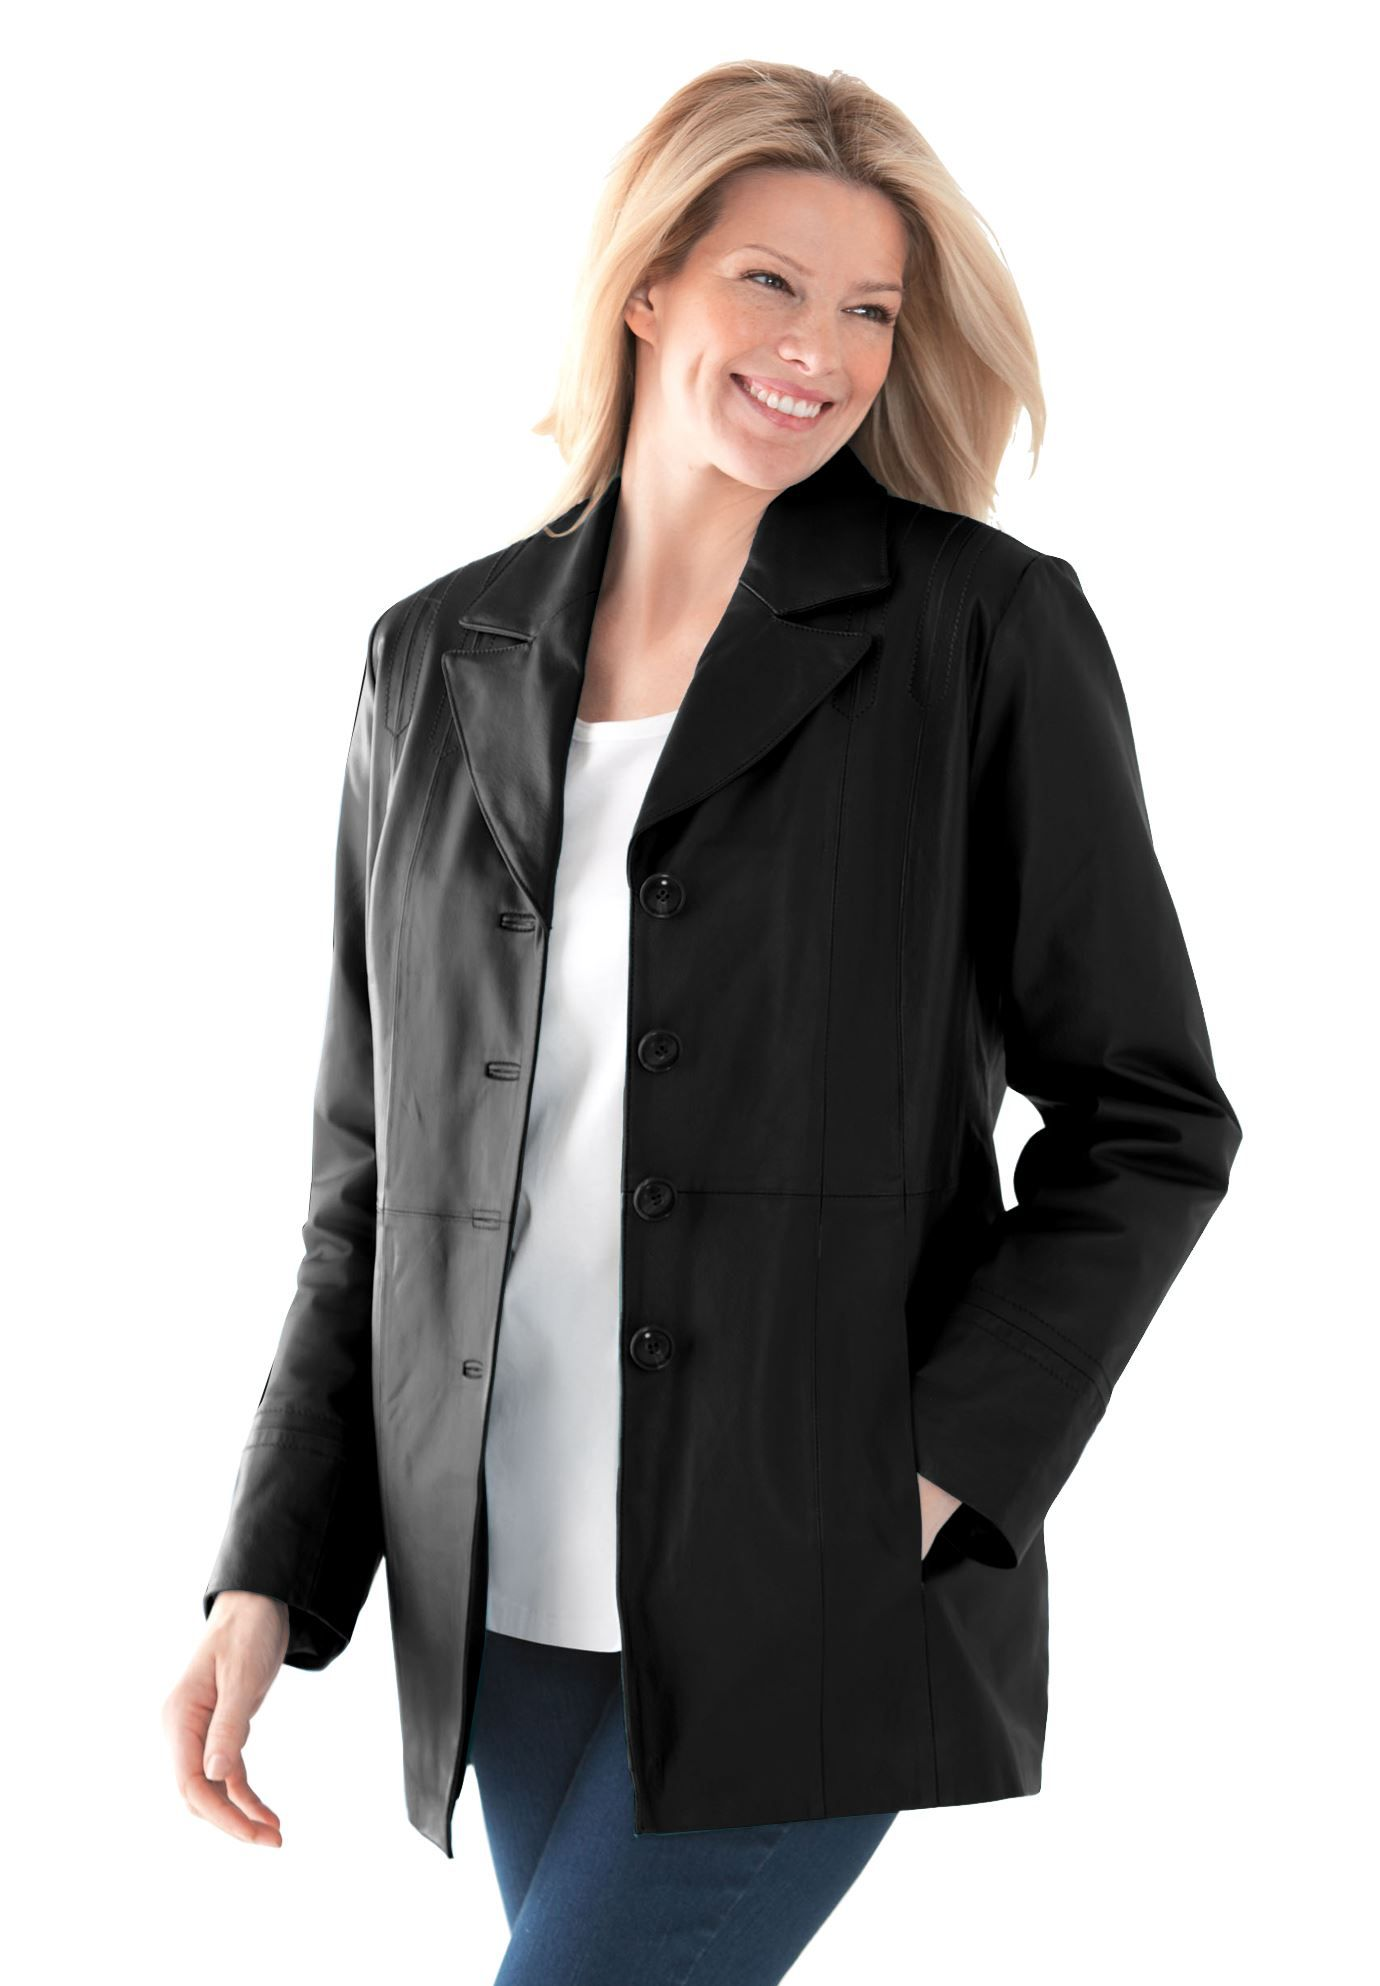 Soft leather jacket with notched lapels Plus Size All